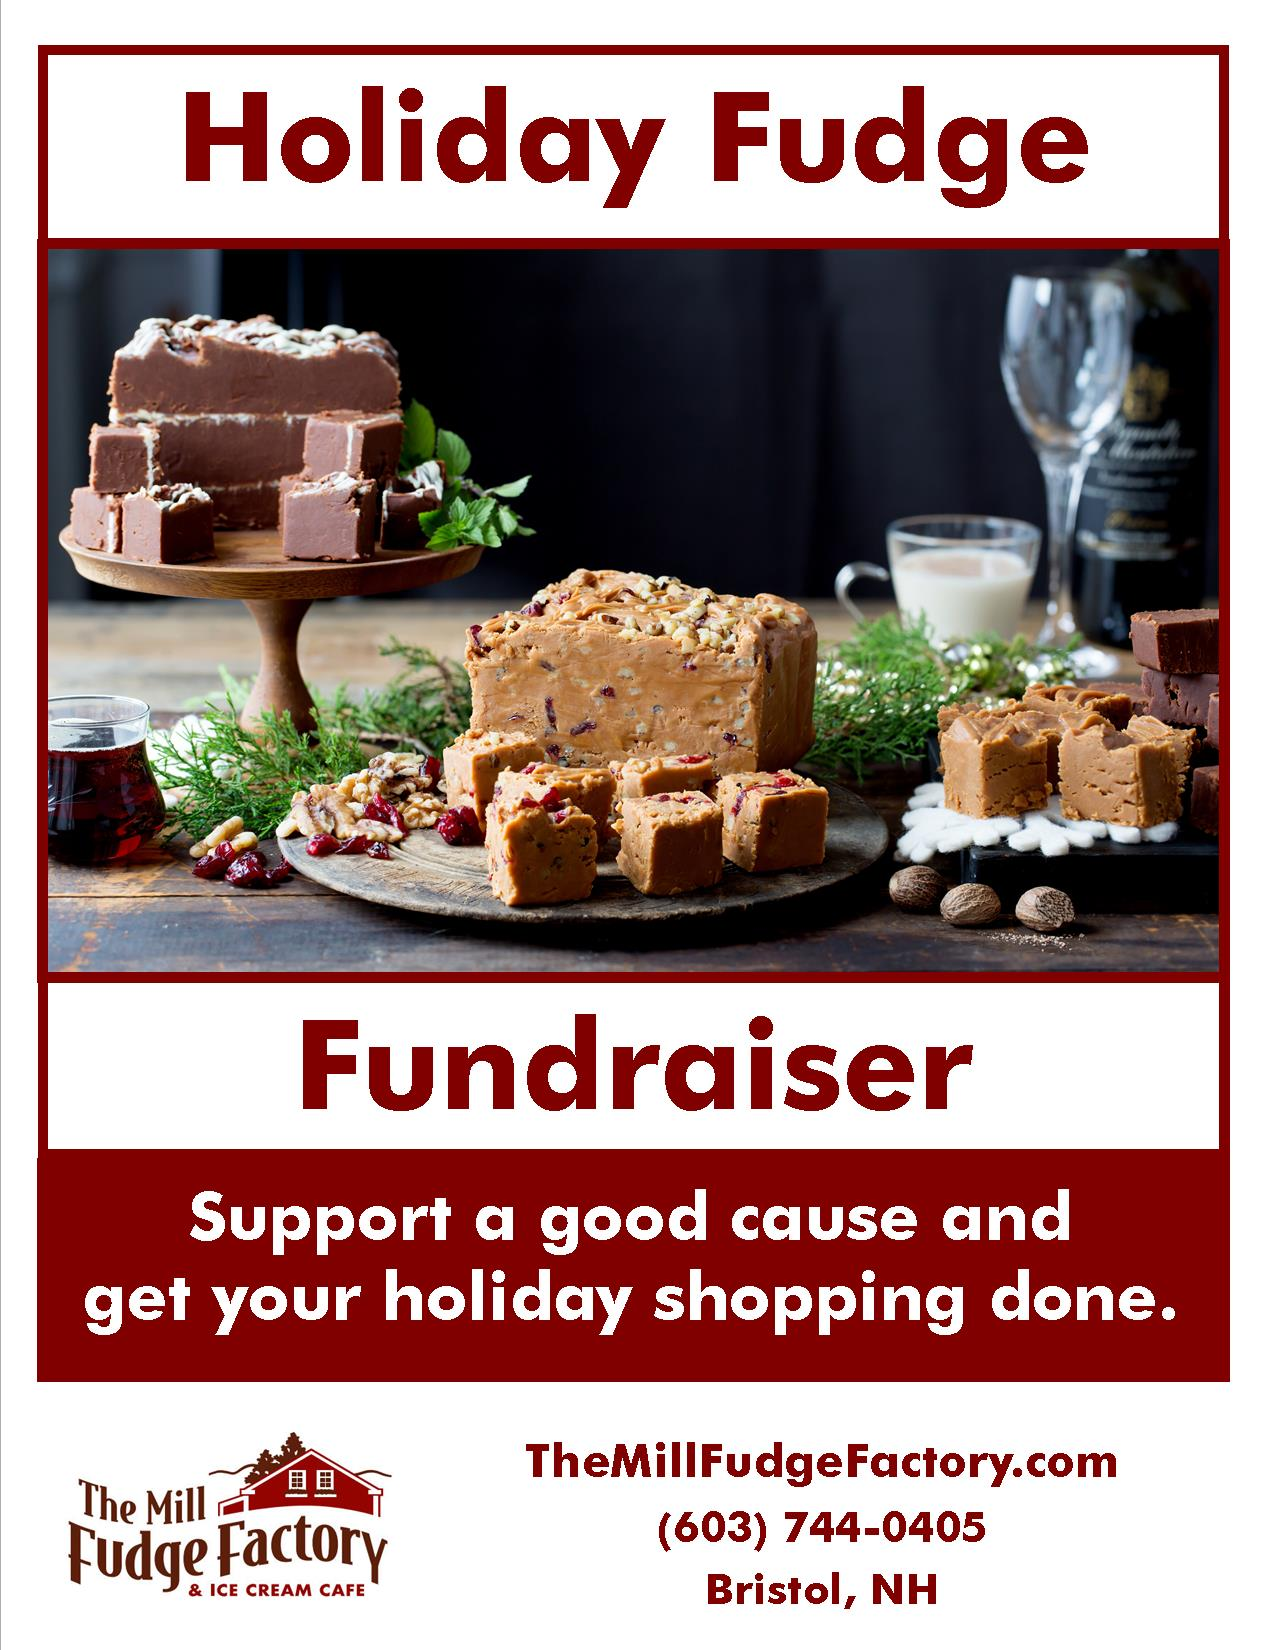 fudge-fundraising-for-the-holidays.jpg